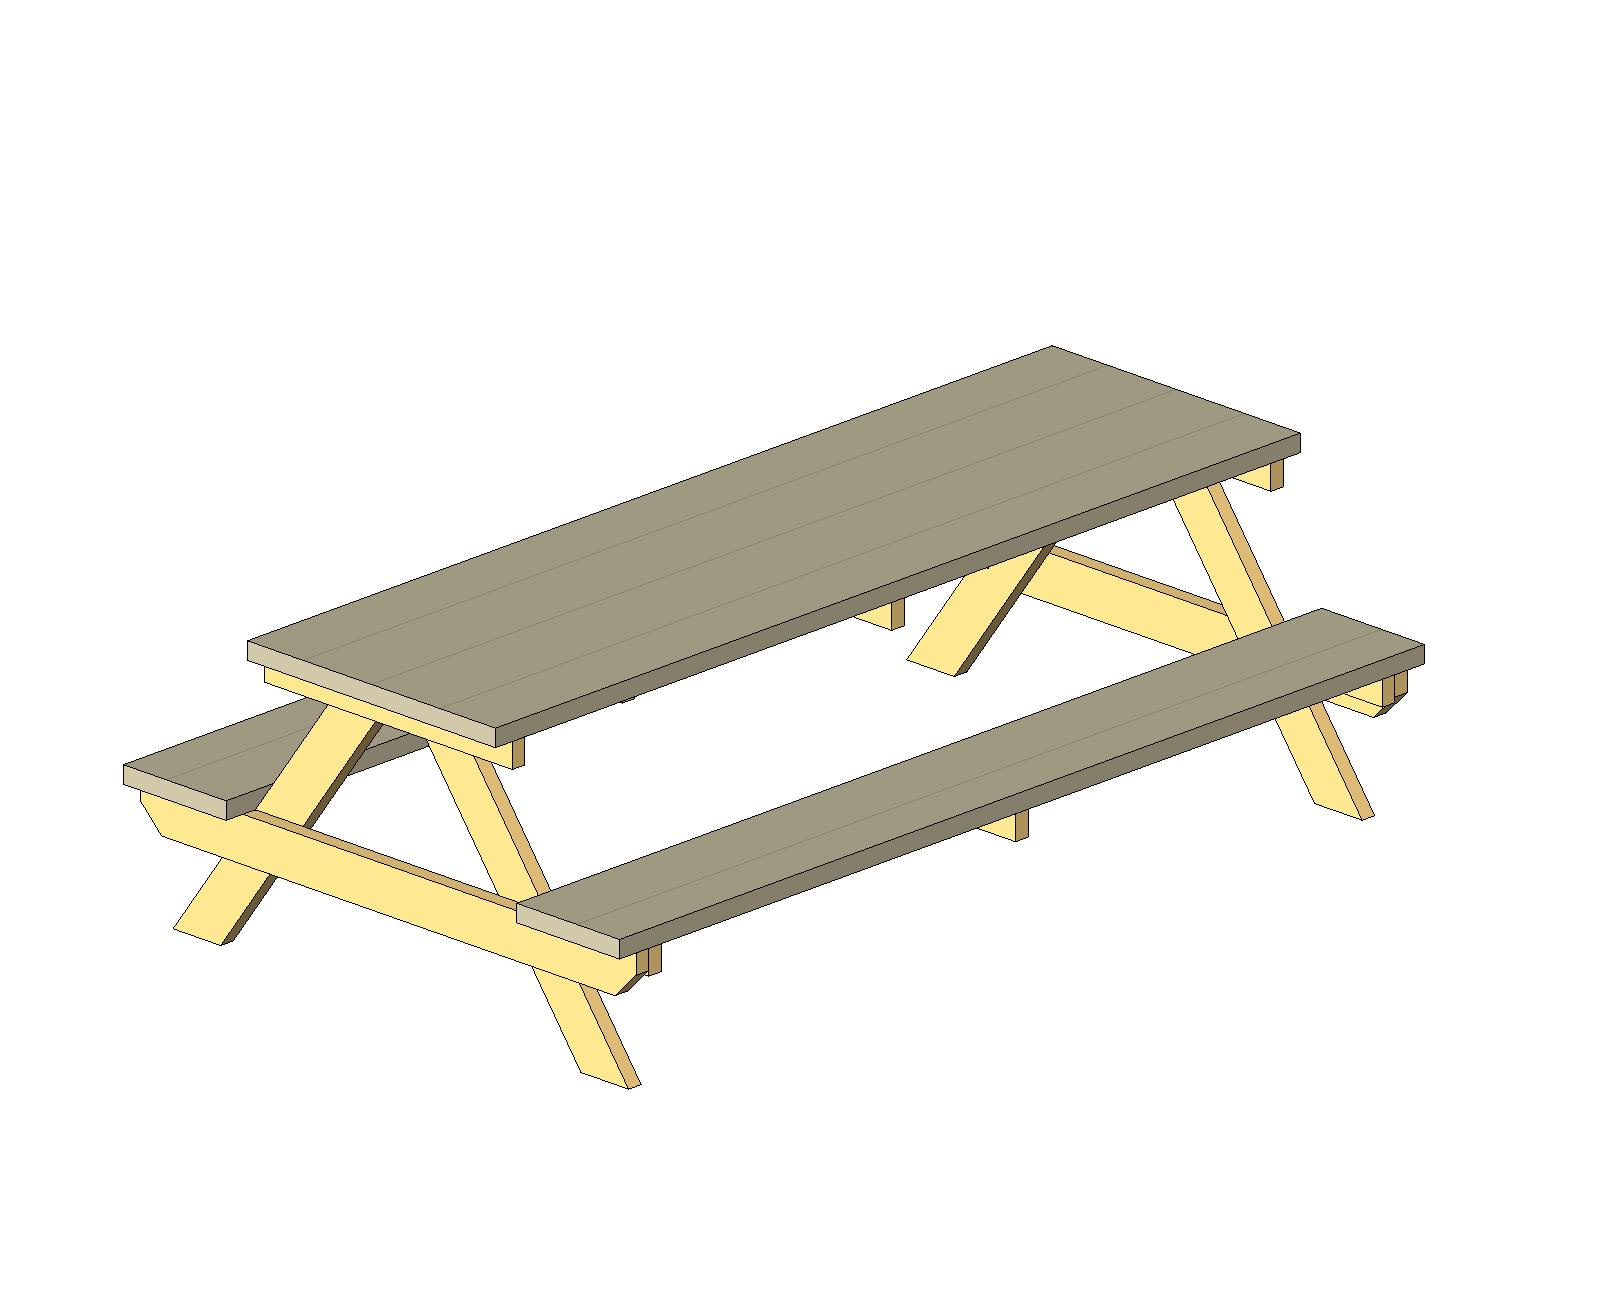 Picnic Table Autocad Drawing Plans DIY Free Download Pool Table - Picnic table dwg